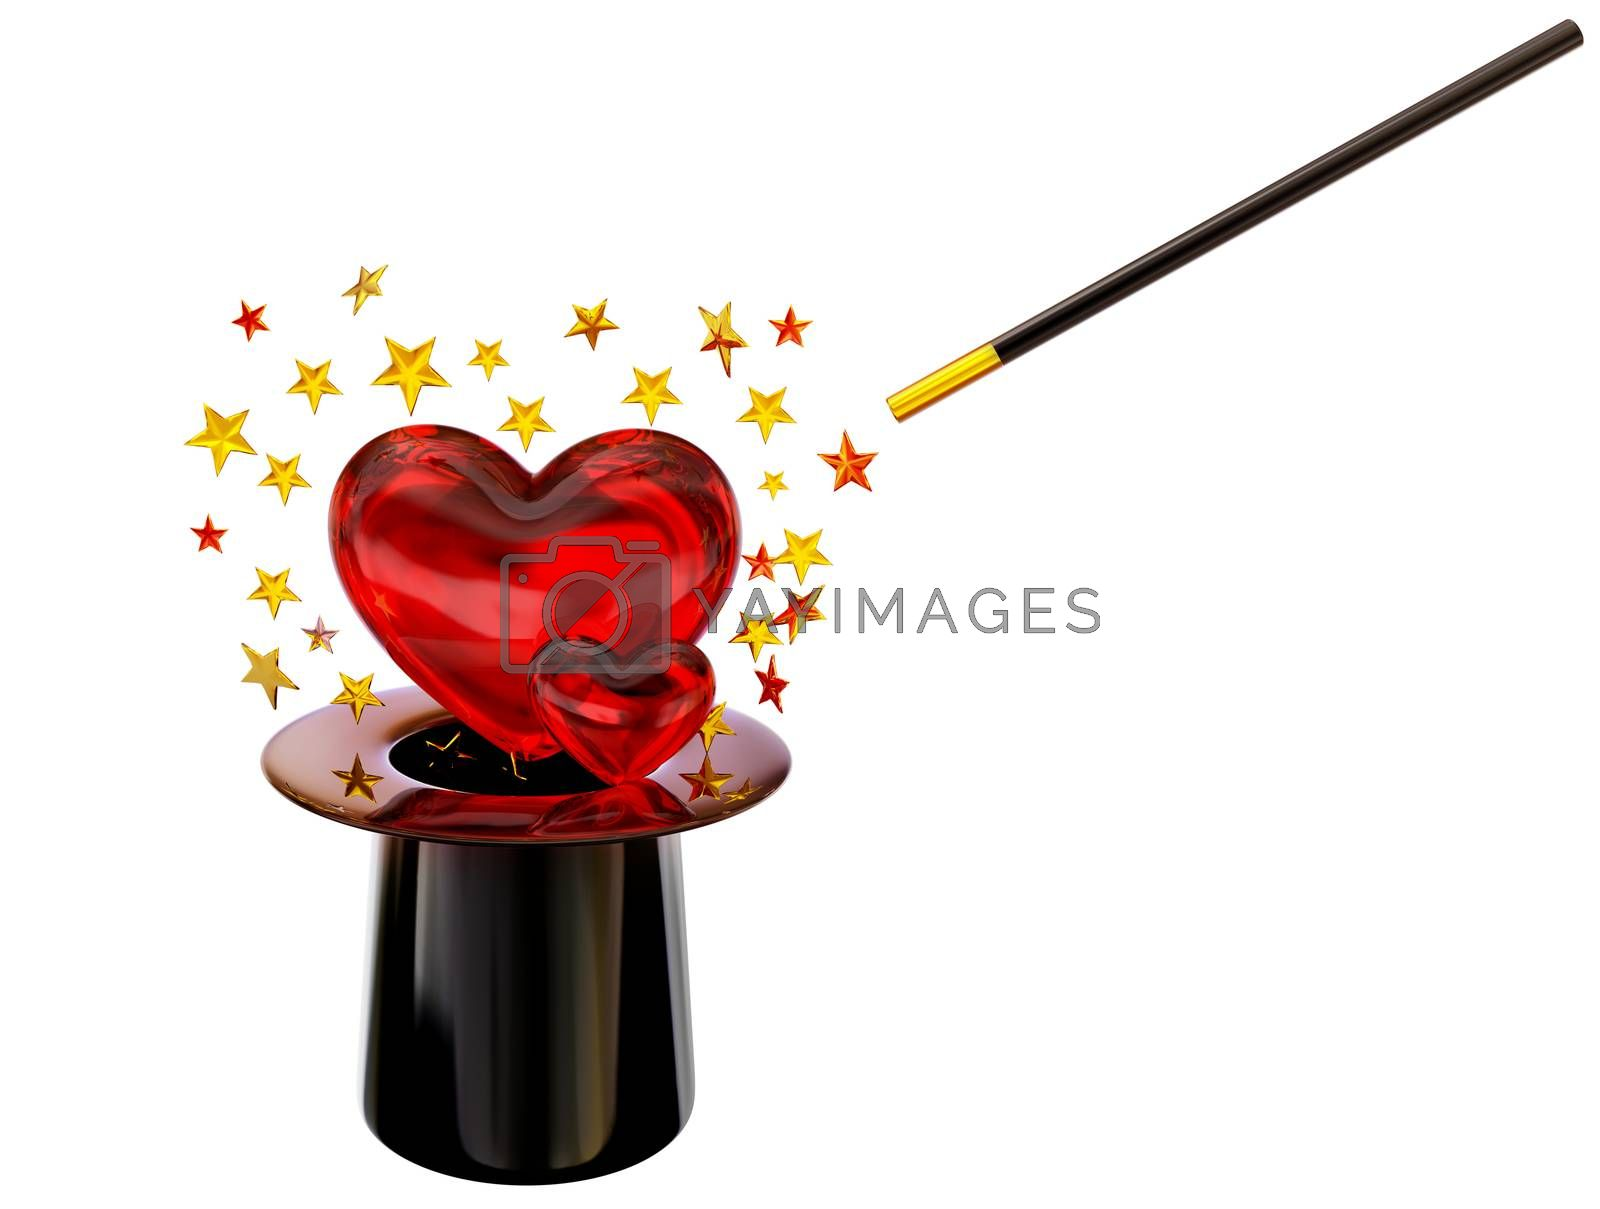 Retro style hat with magic wand and stars for love spell on white background